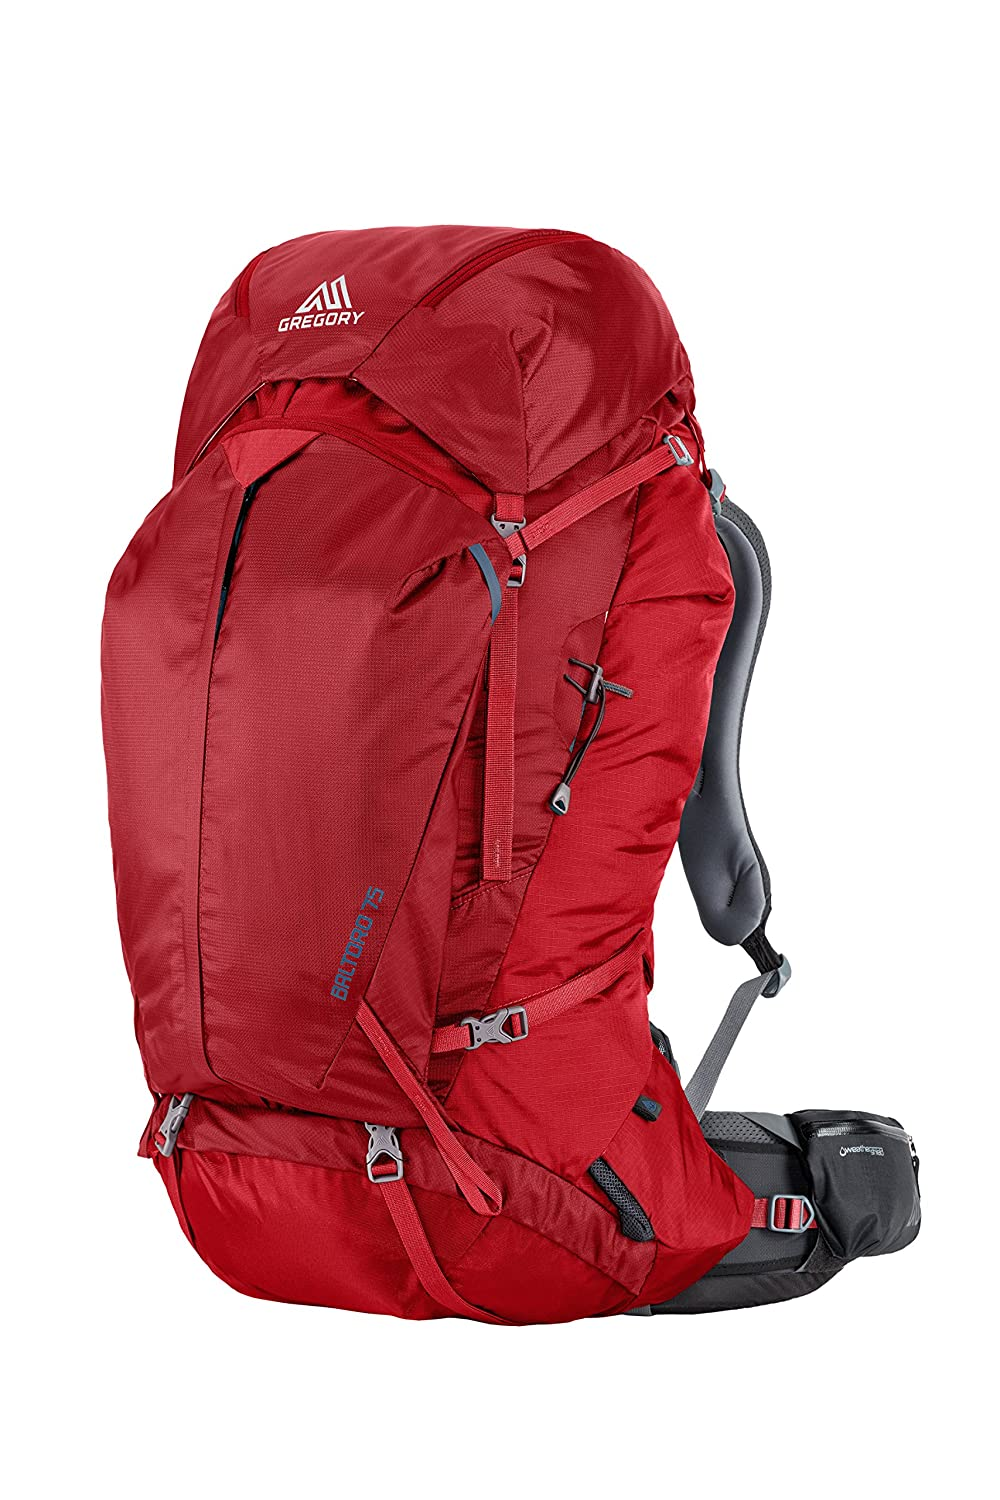 The Gregory Mountain Baltoro 75